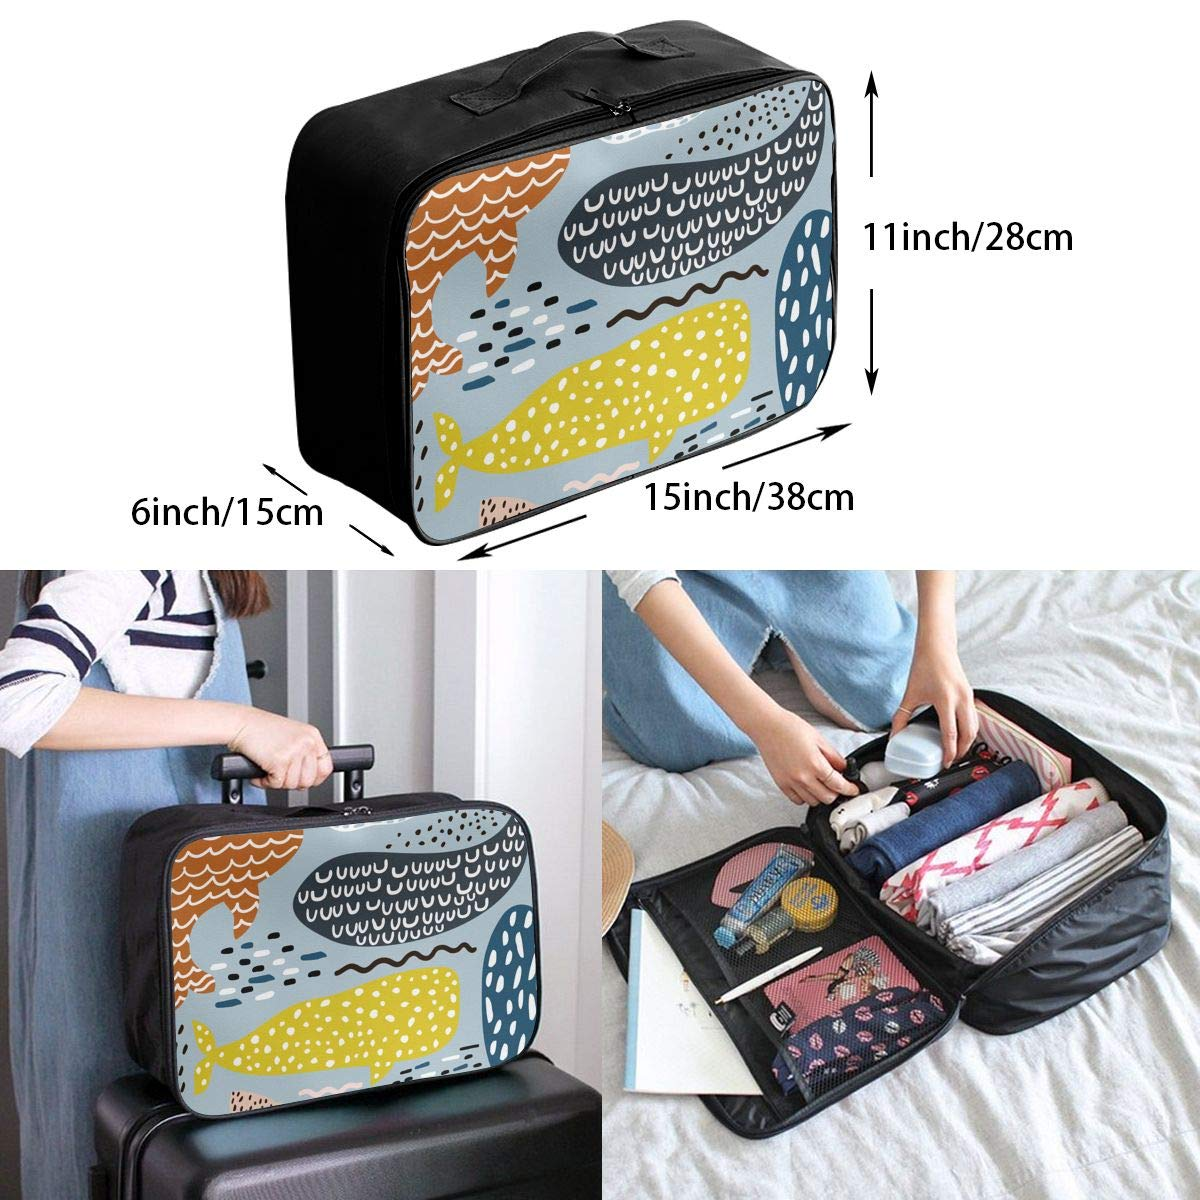 Travel Luggage Duffle Bag Lightweight Portable Handbag Colorful Whale Painting Large Capacity Waterproof Foldable Storage Tote